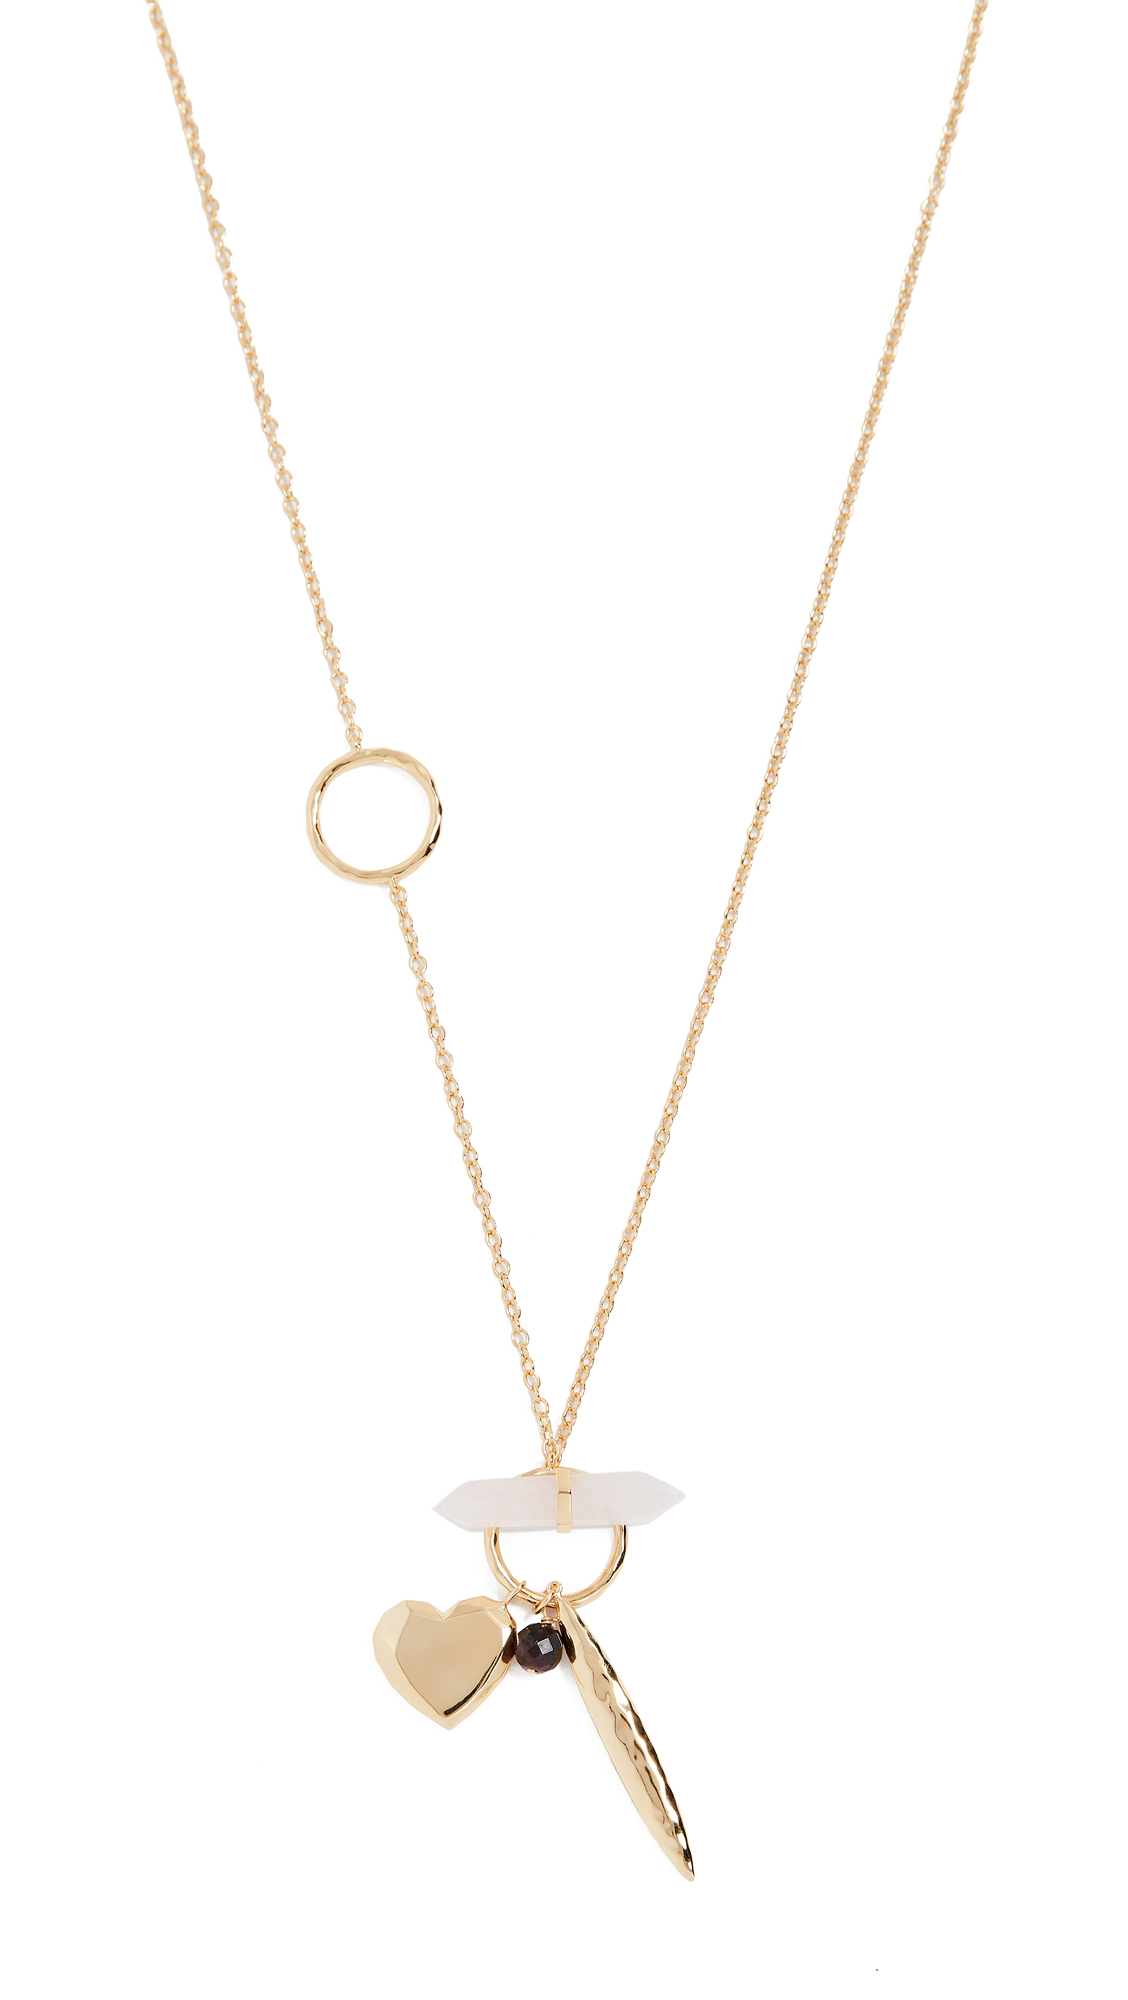 Gorjana Wanderlust Toggle Charm Necklace PRLtqllKBw